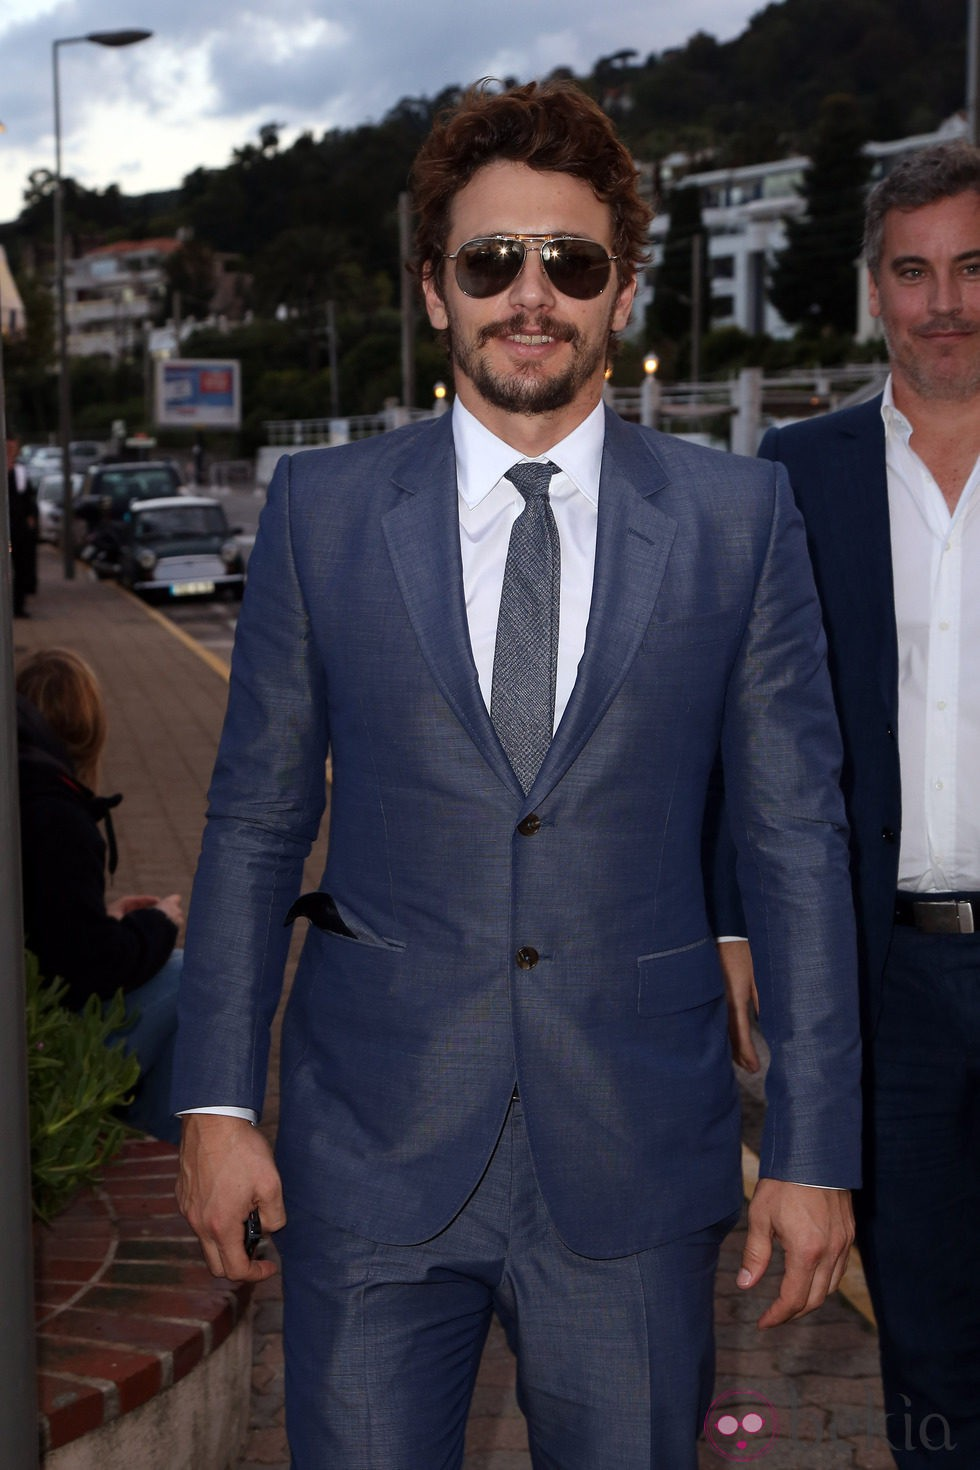 James Franco en la fiesta Vanity Fair del Festival de Cannes 2013